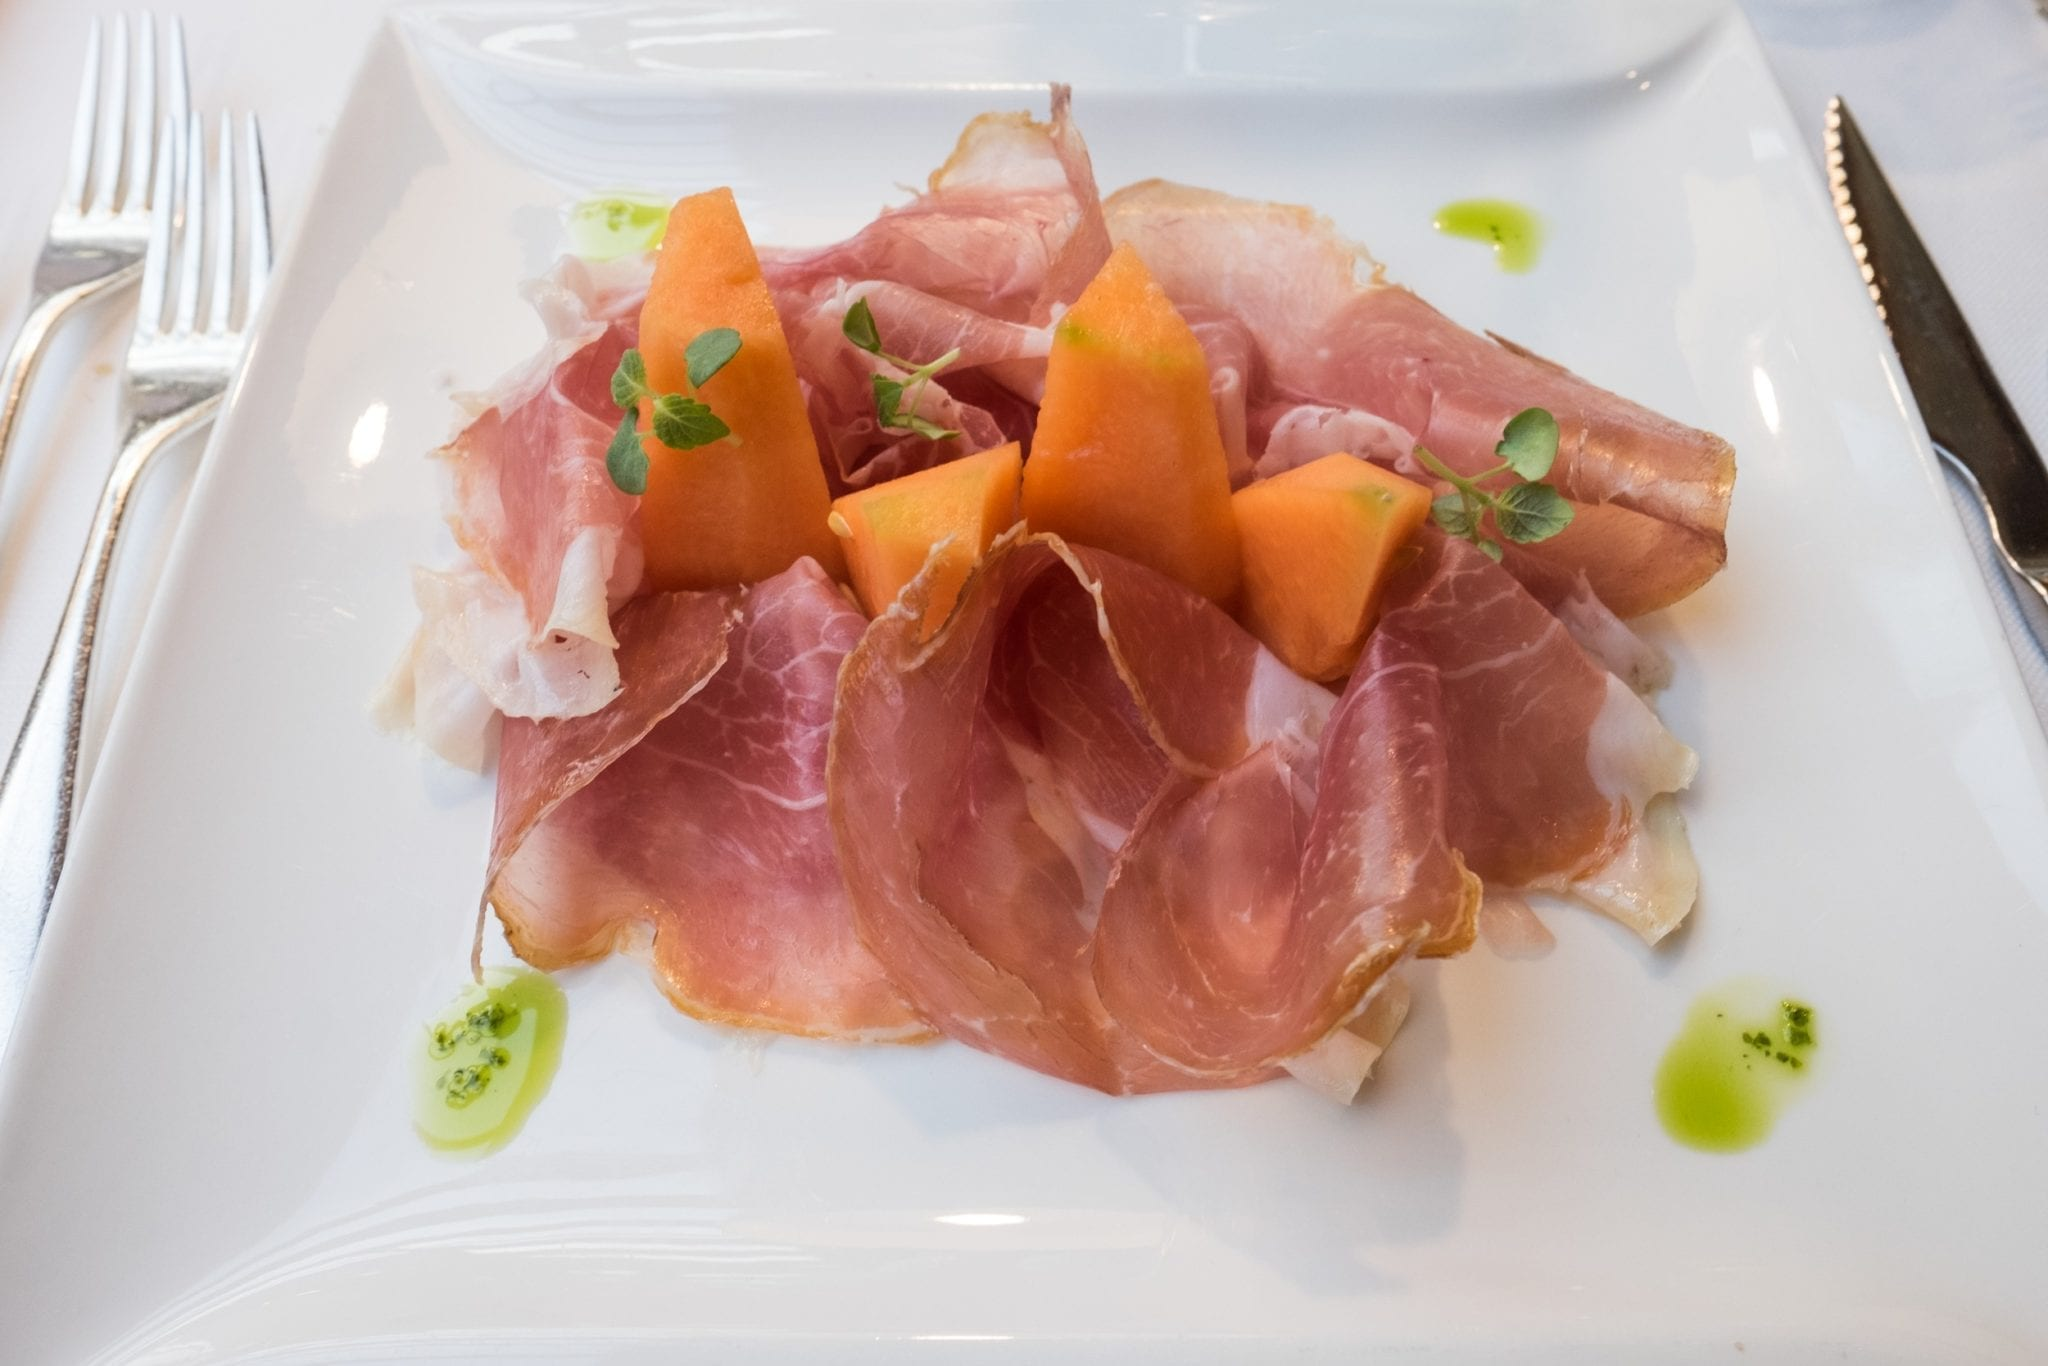 A plate of pillowy pink speck, or Tyrolean ham, with pieces of orange melon.